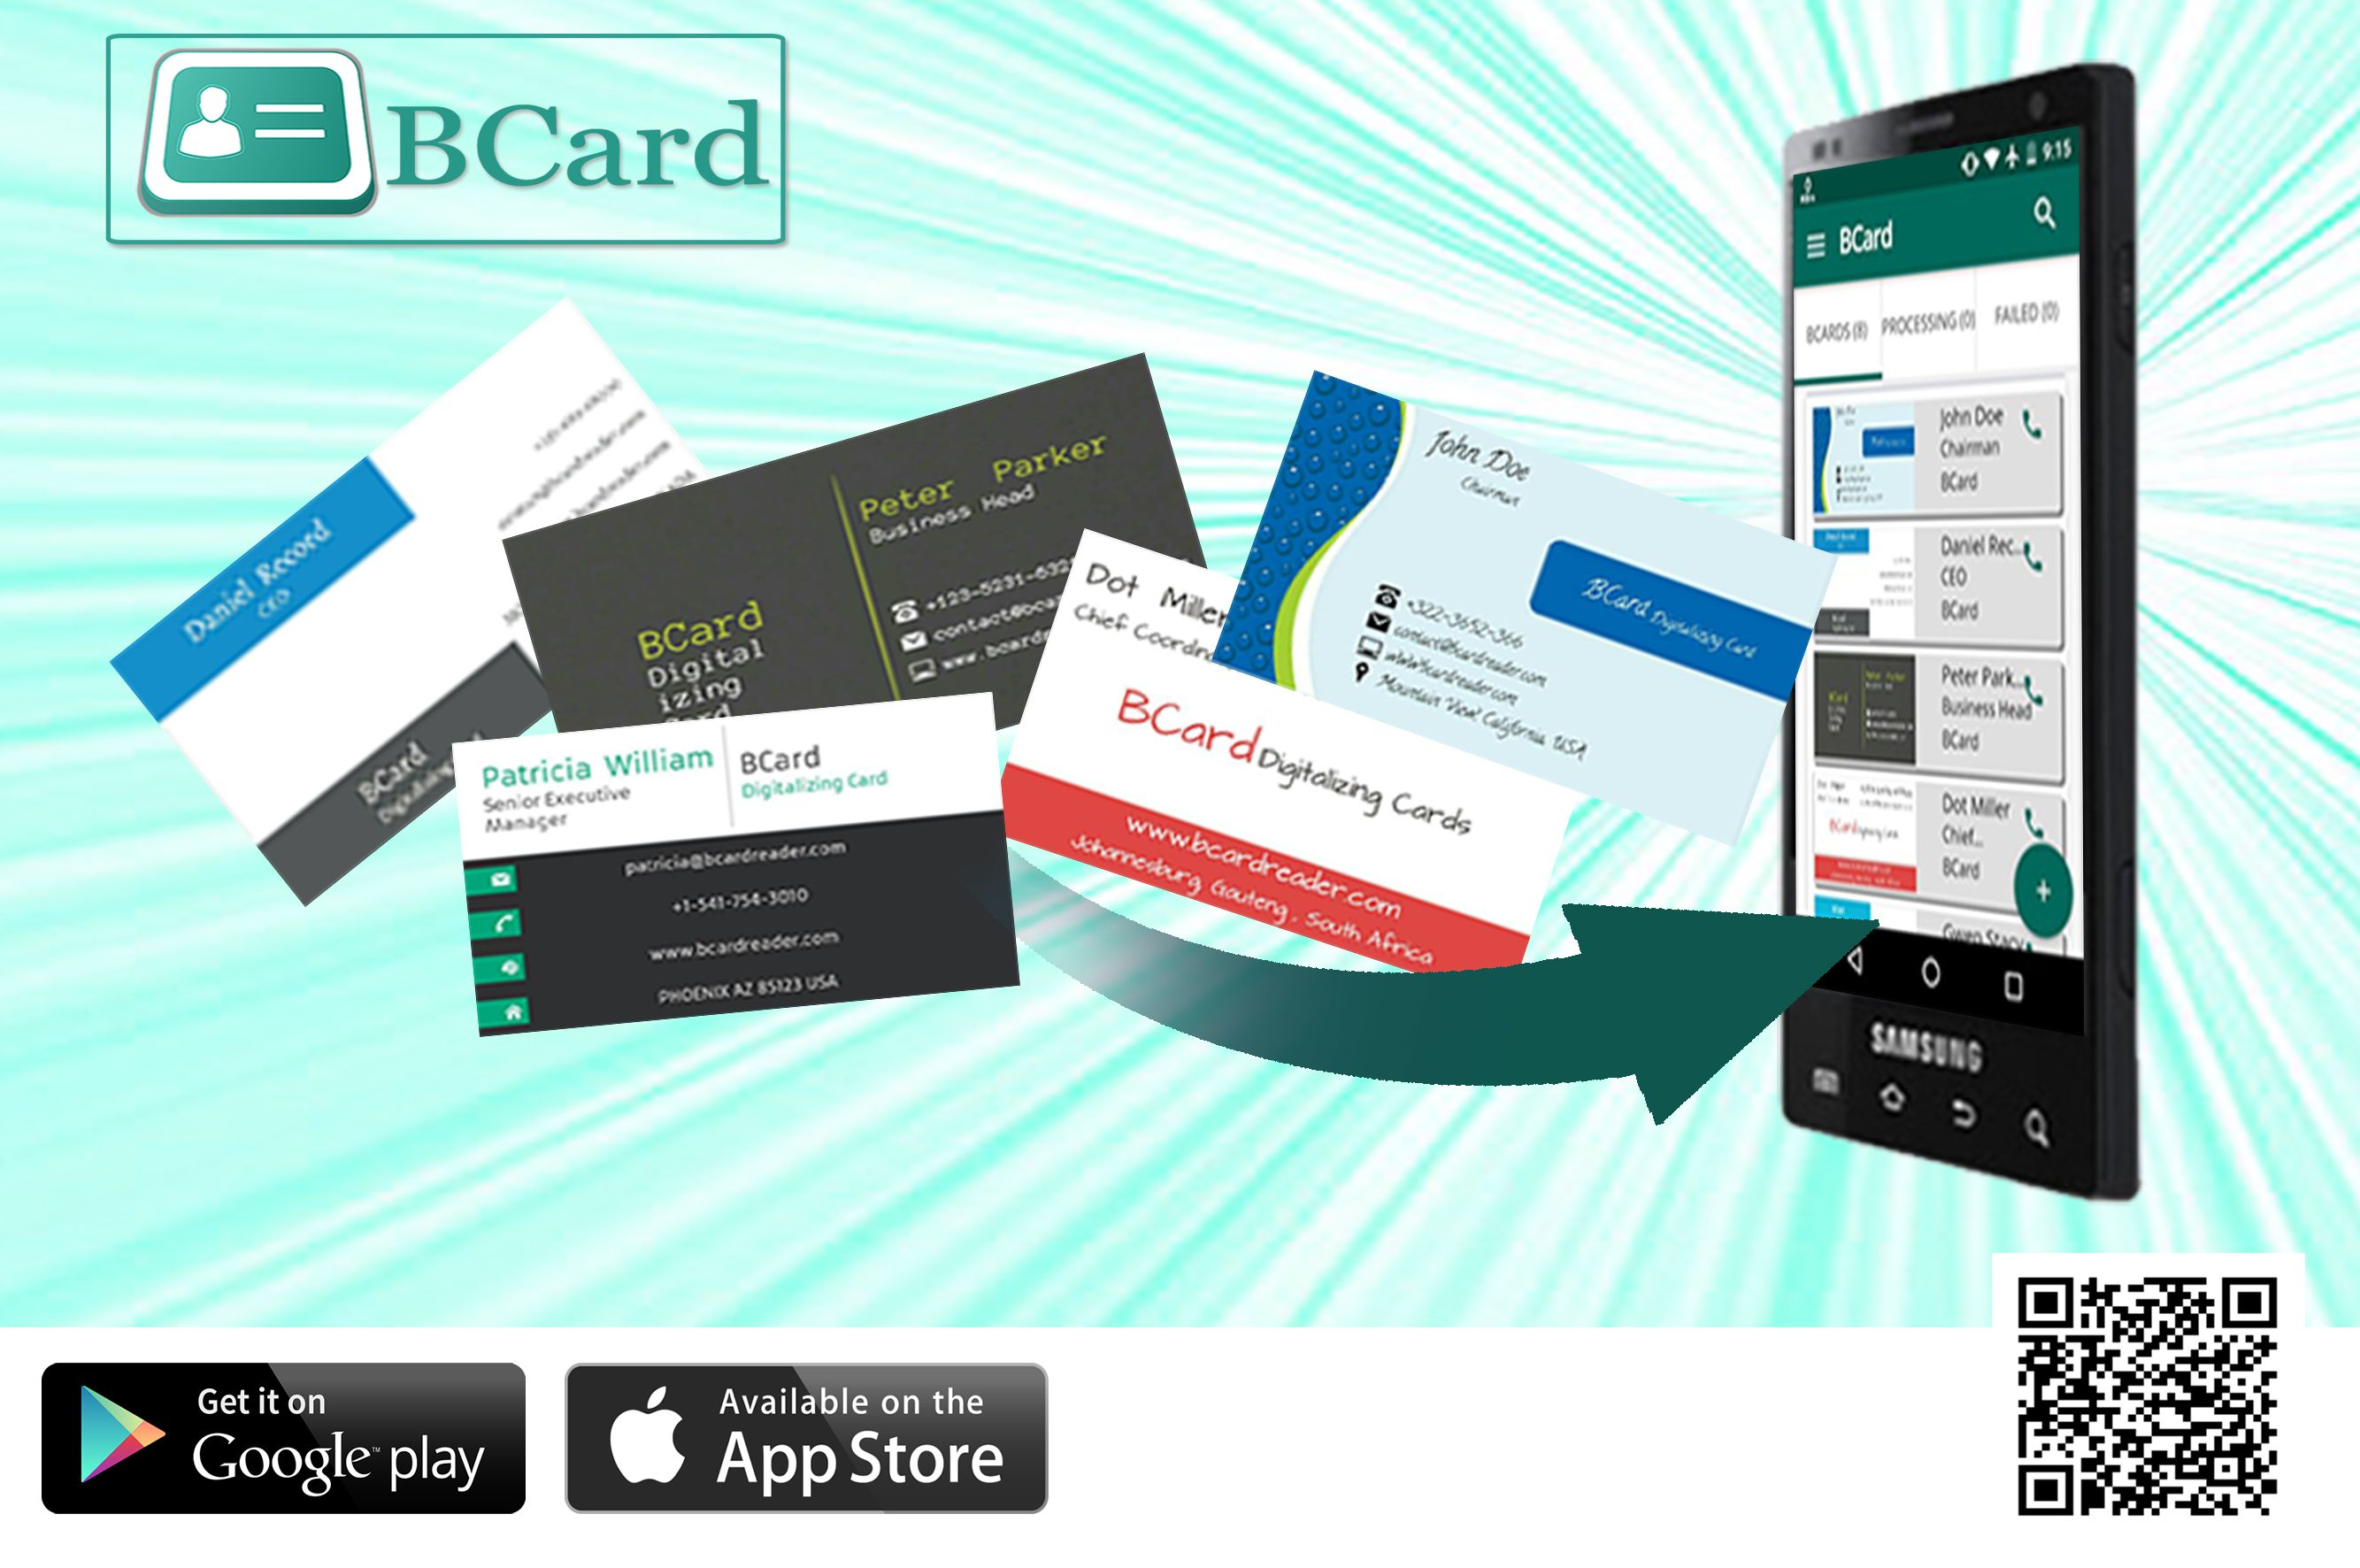 Save paper save trees manage your all paper business card with bcard save paper save trees manage your all paper business card with bcard readertpbcardreader colourmoves